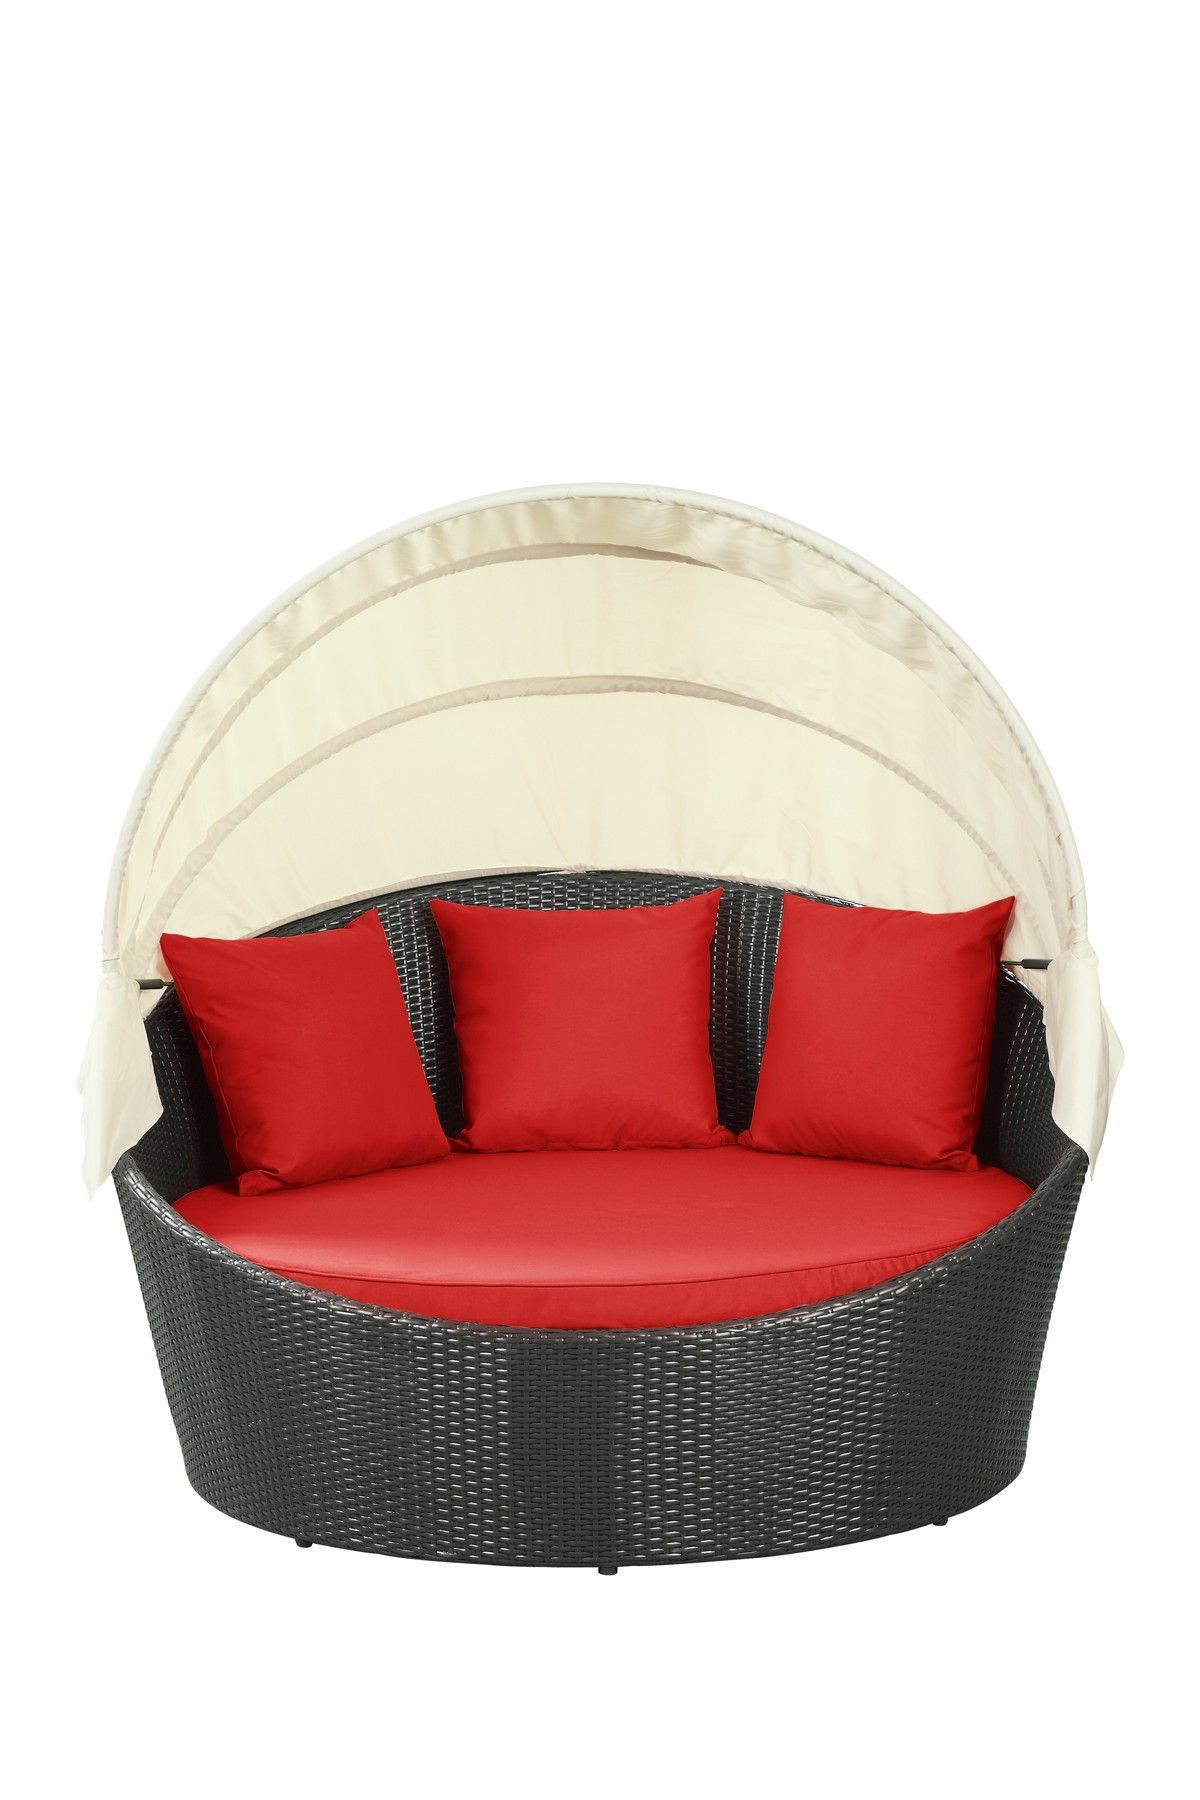 Siesta Outdoor Wicker Patio Canopy Bed - Espresso/Red---how fun! #TruckCanopyIdeas  sc 1 st  Pinterest & Siesta Outdoor Wicker Patio Canopy Bed - Espresso/Red---how fun ...